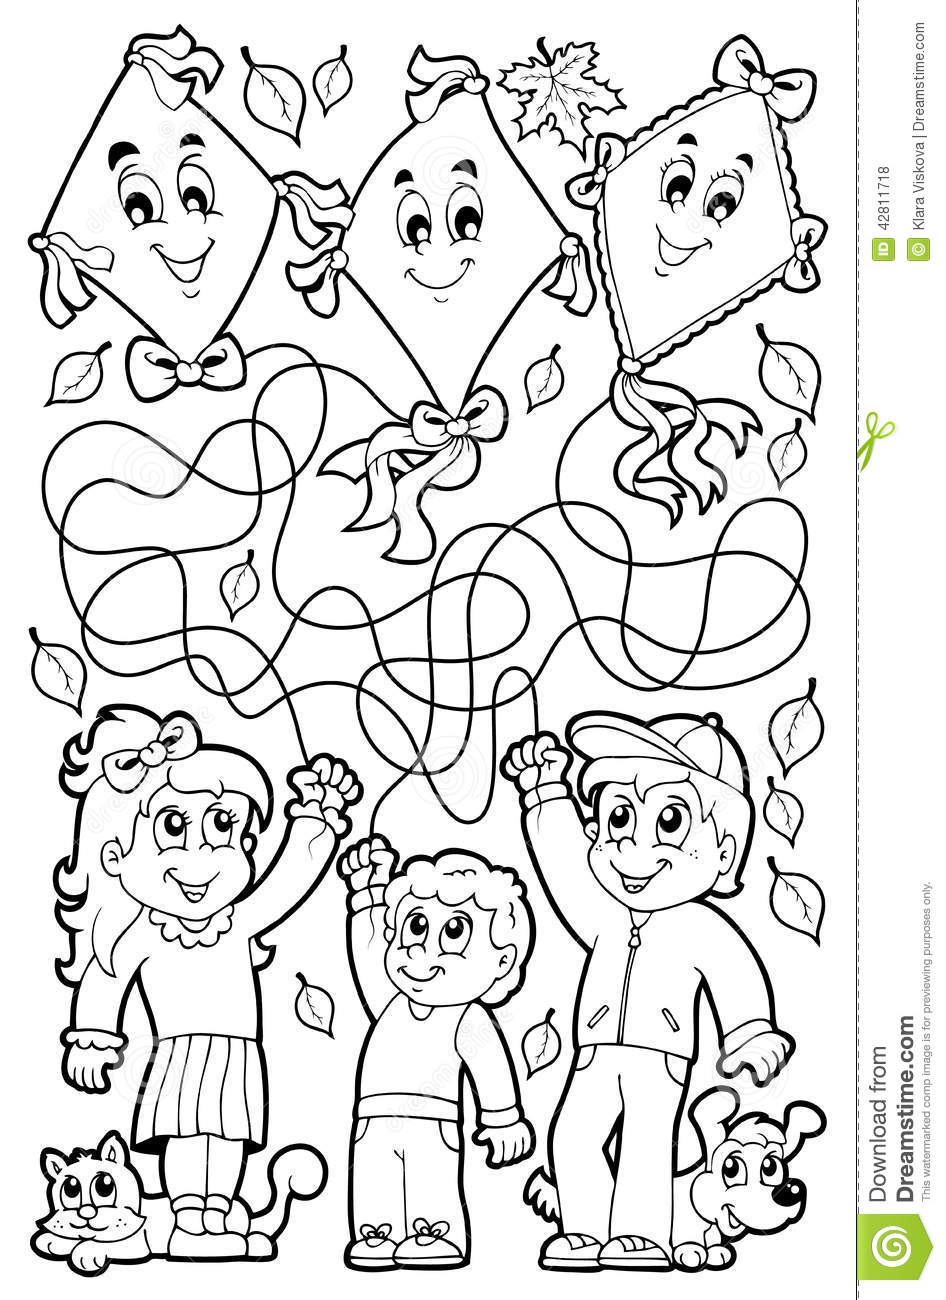 Royalty Free Vector Download Maze 9 Coloring Book With Children